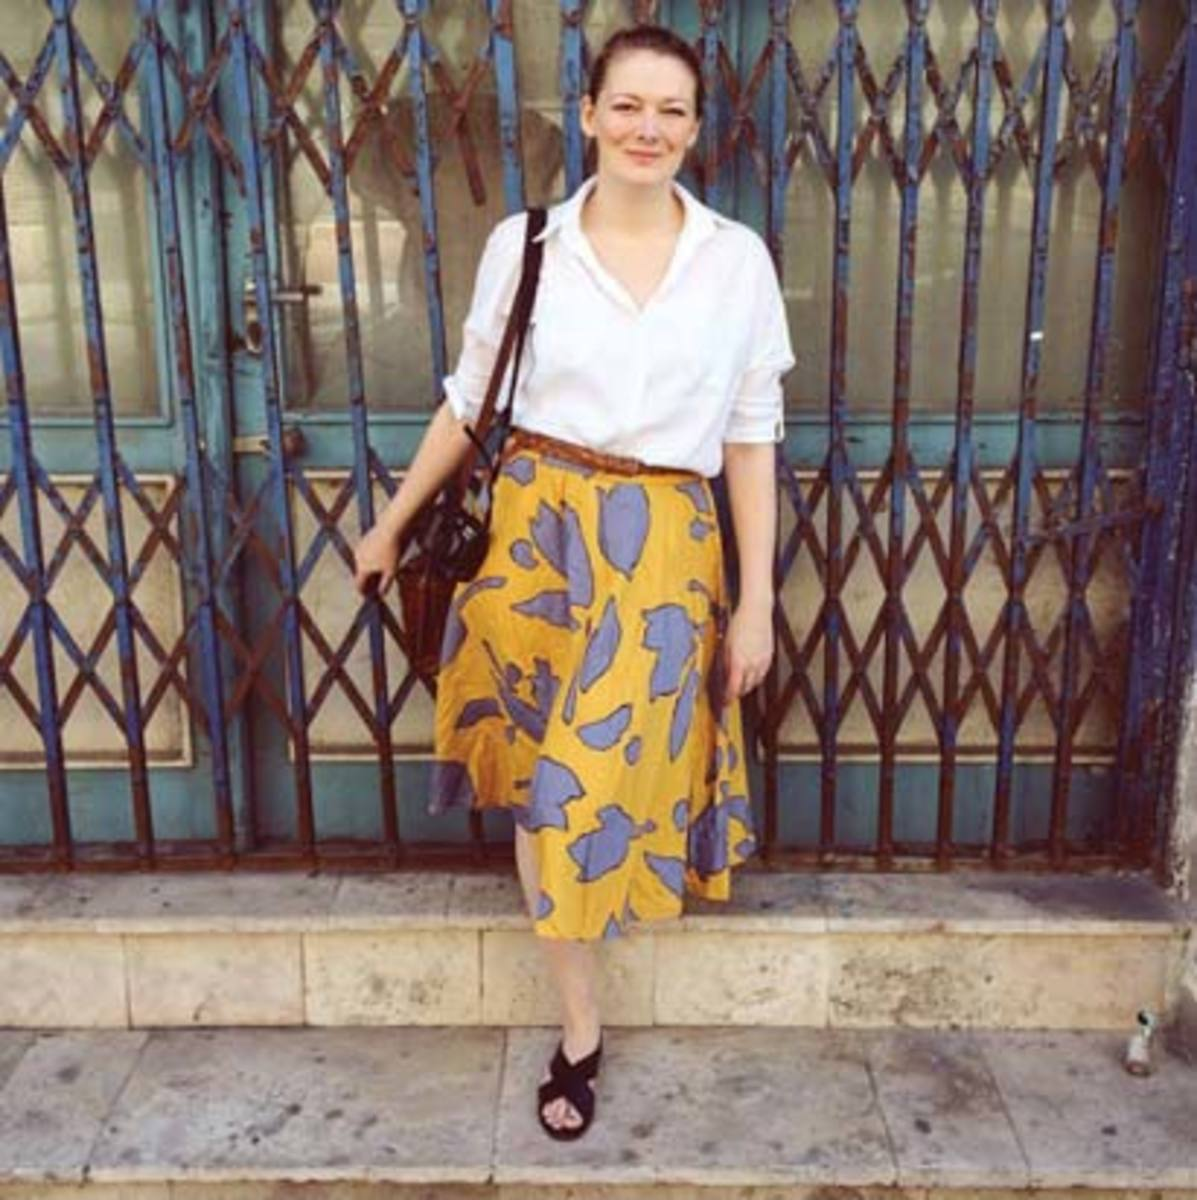 Kerry Hudson, pictured in Budapest, Hungary, likes to stay in one place for a month or two to get a feel for the culture.